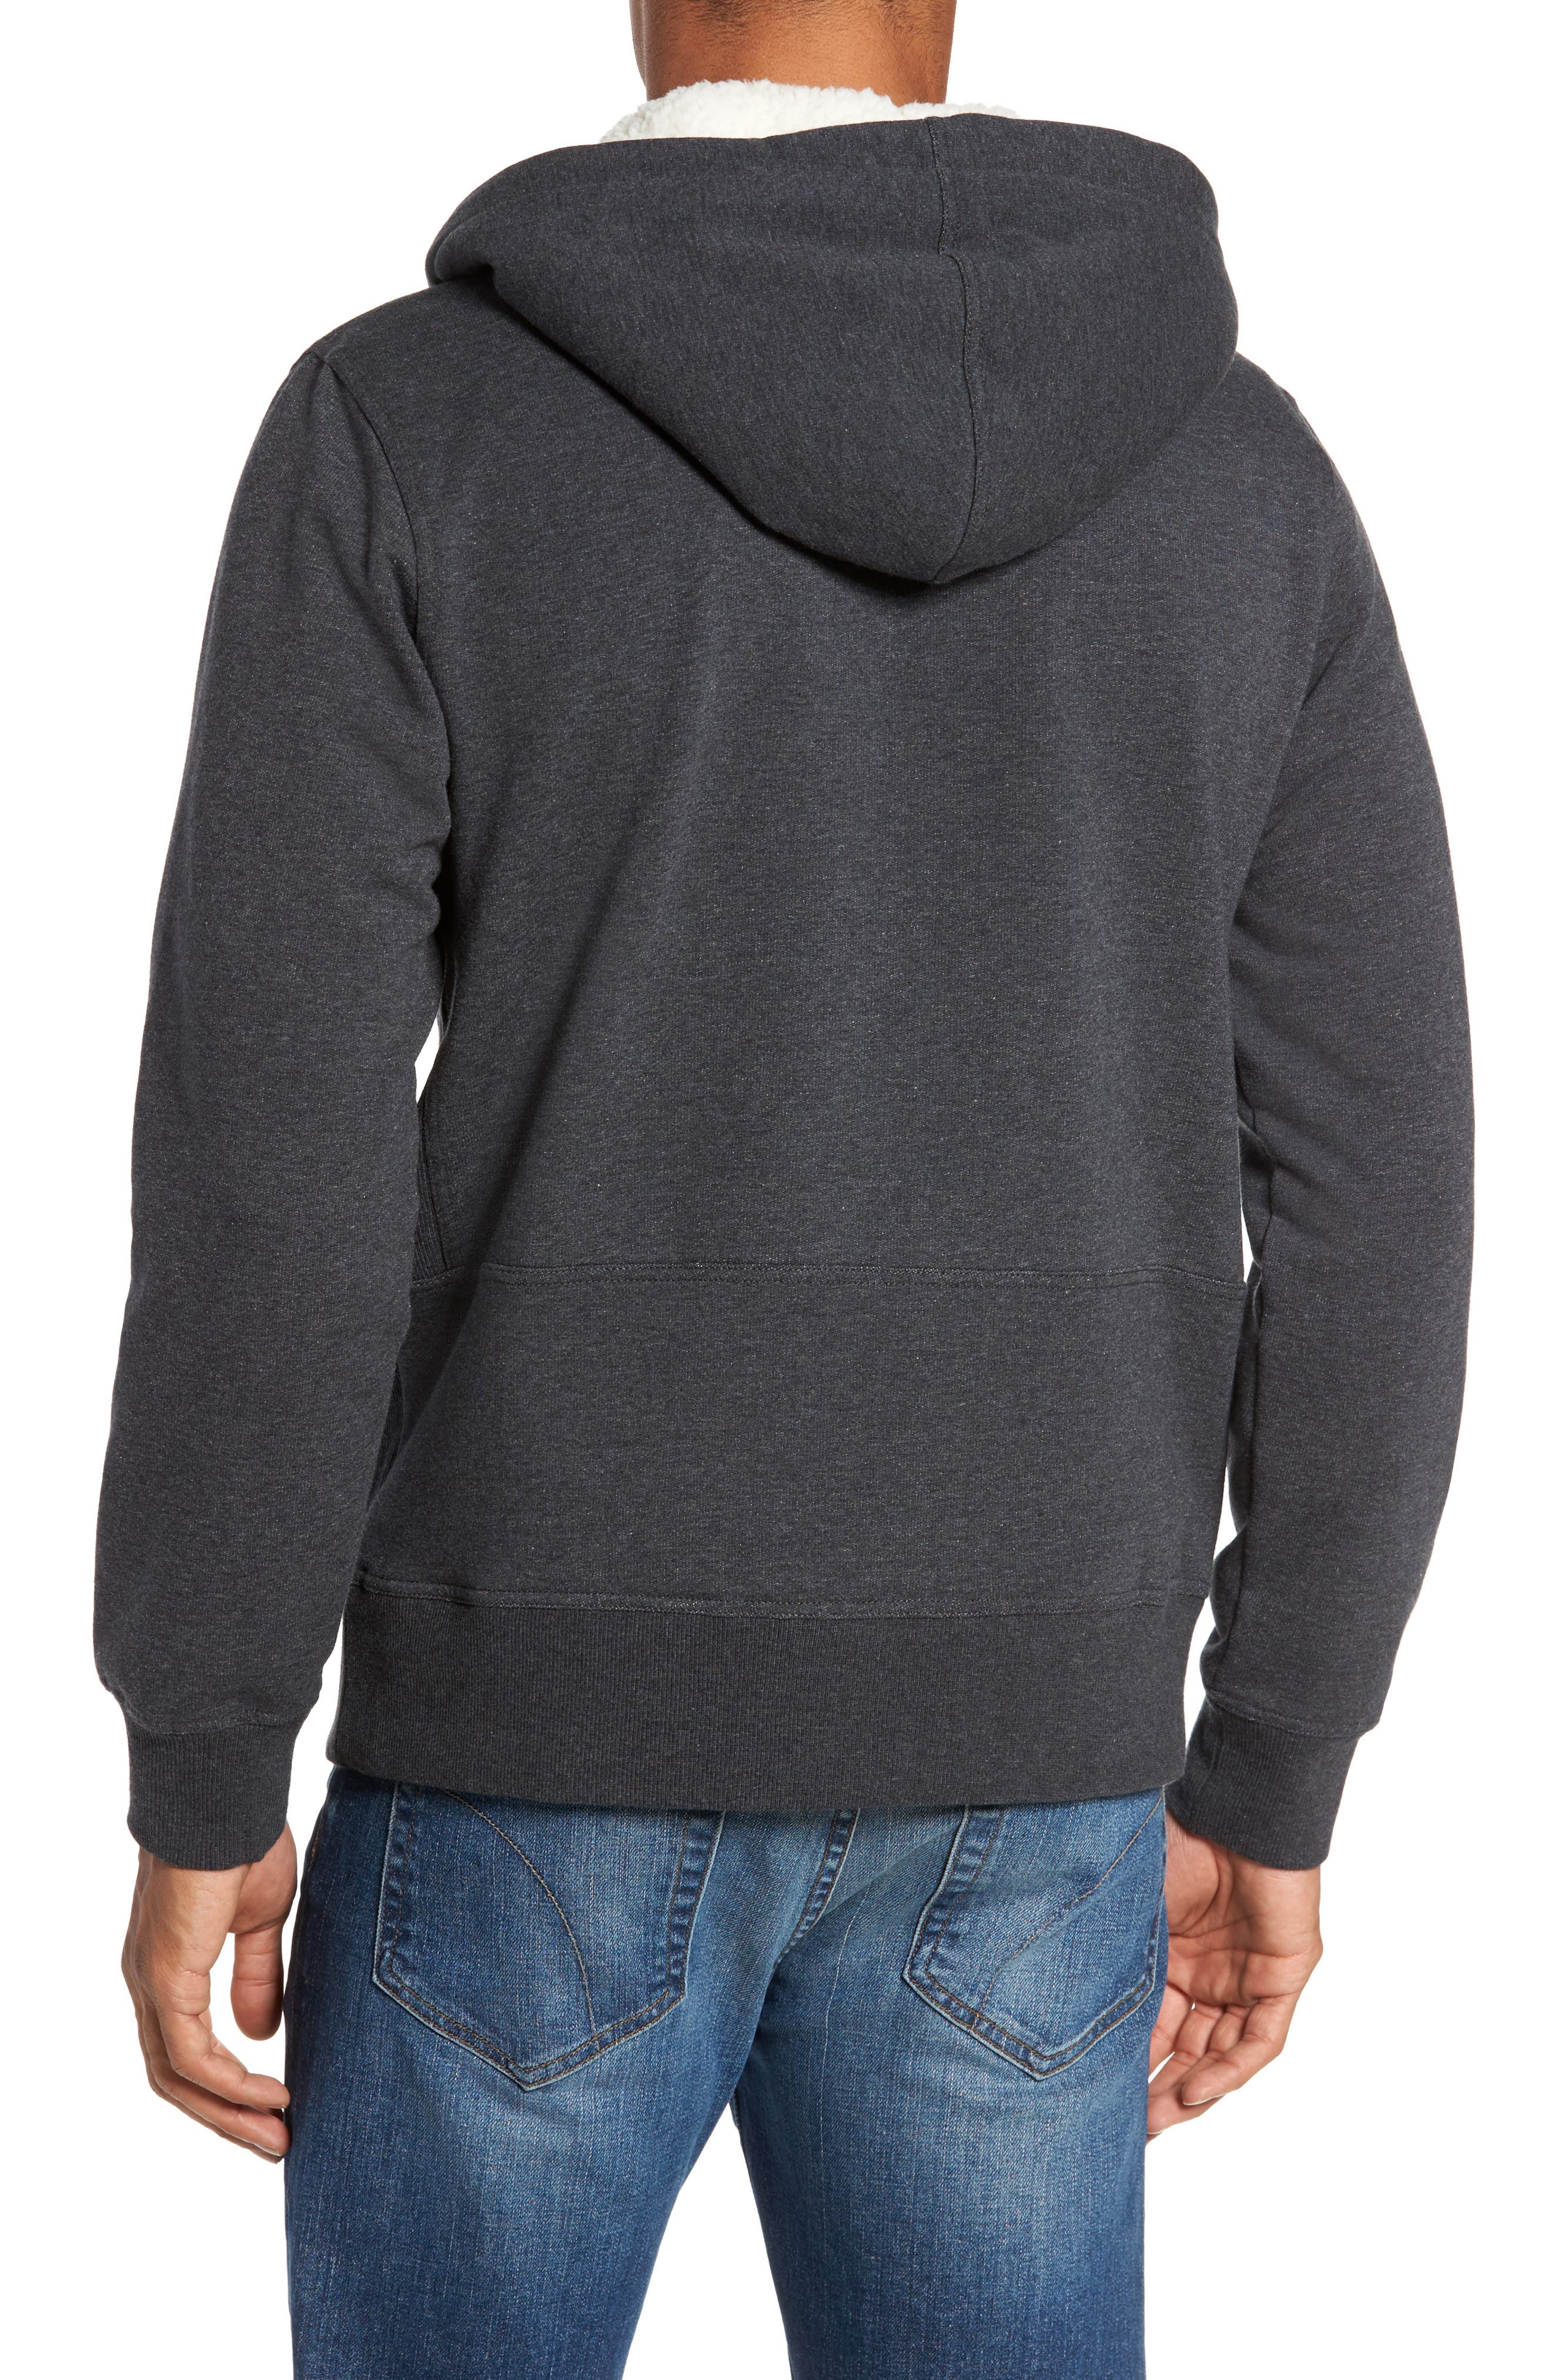 Fleece Lined Hoodie,                             Alternate thumbnail 2, color,                             Charcoal